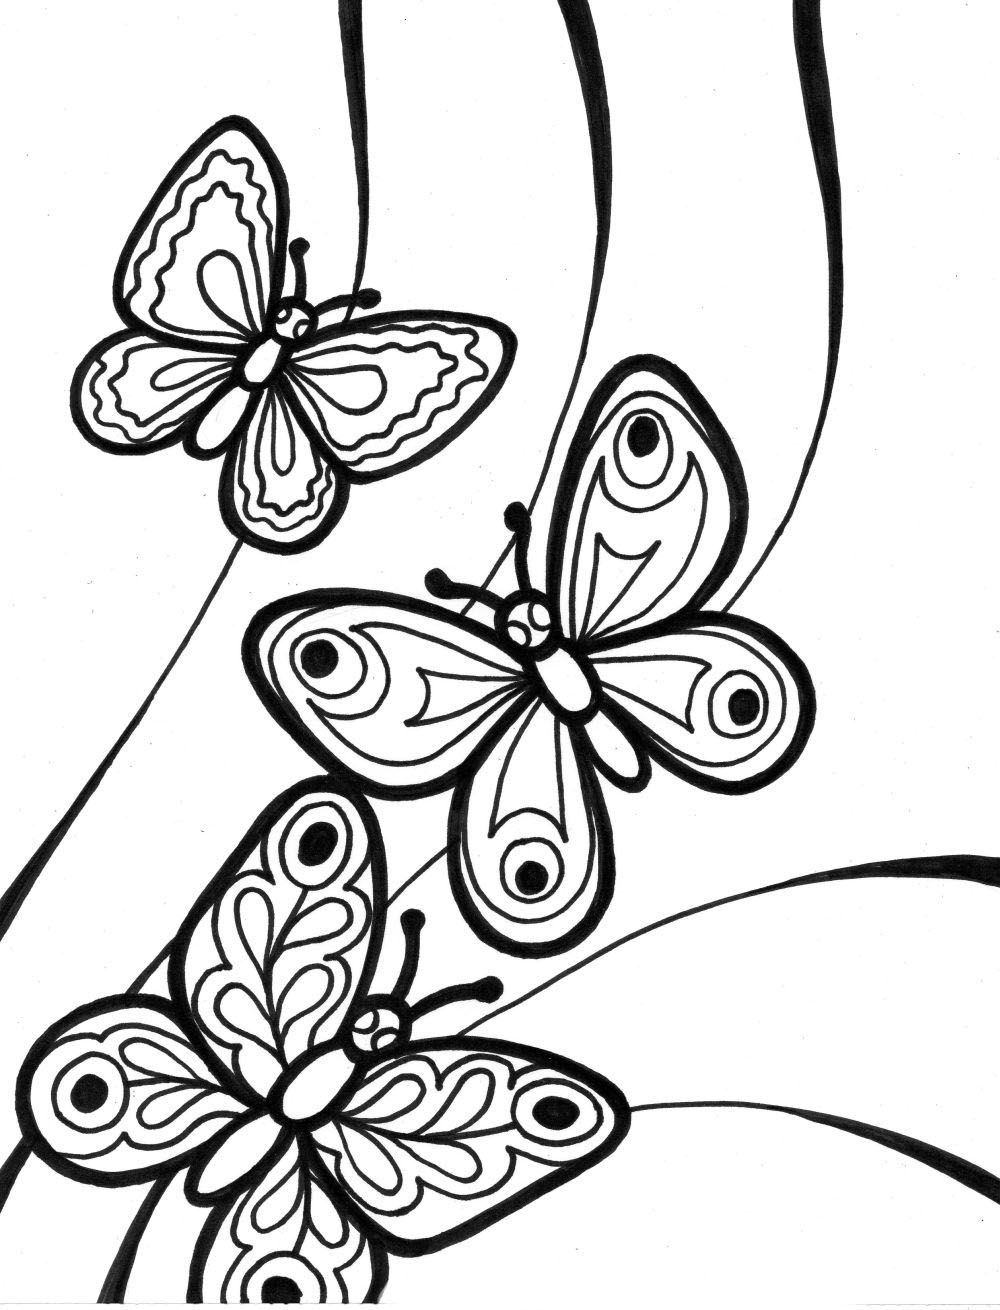 Mariposas   Butterfly coloring page, Flower coloring pages ...